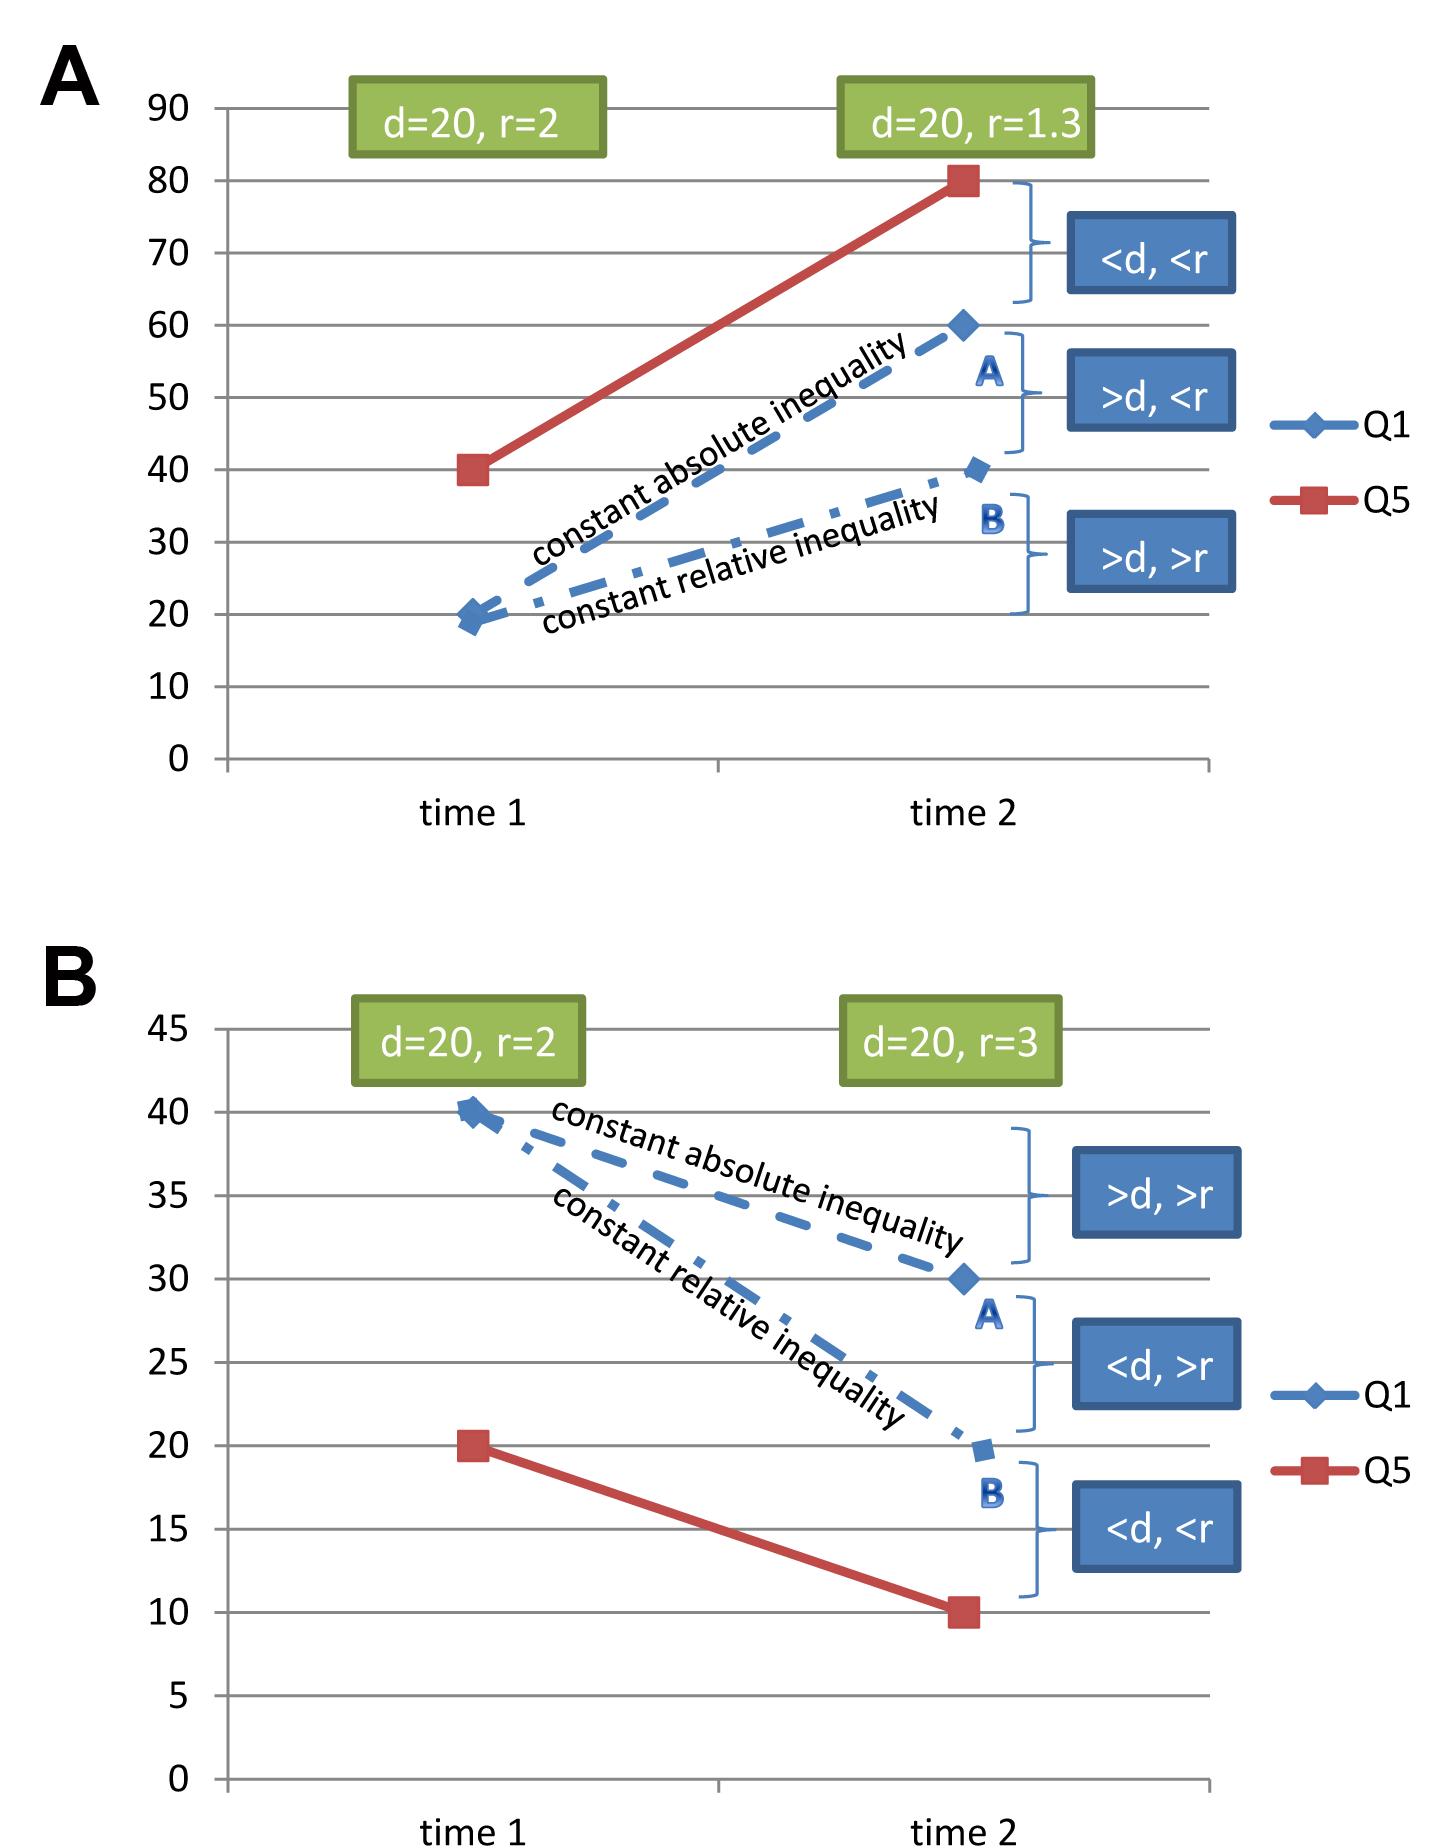 Different situations in relation to the time trend of the health indicator studied, and how changes are related to increased or decreased measures of inequality.